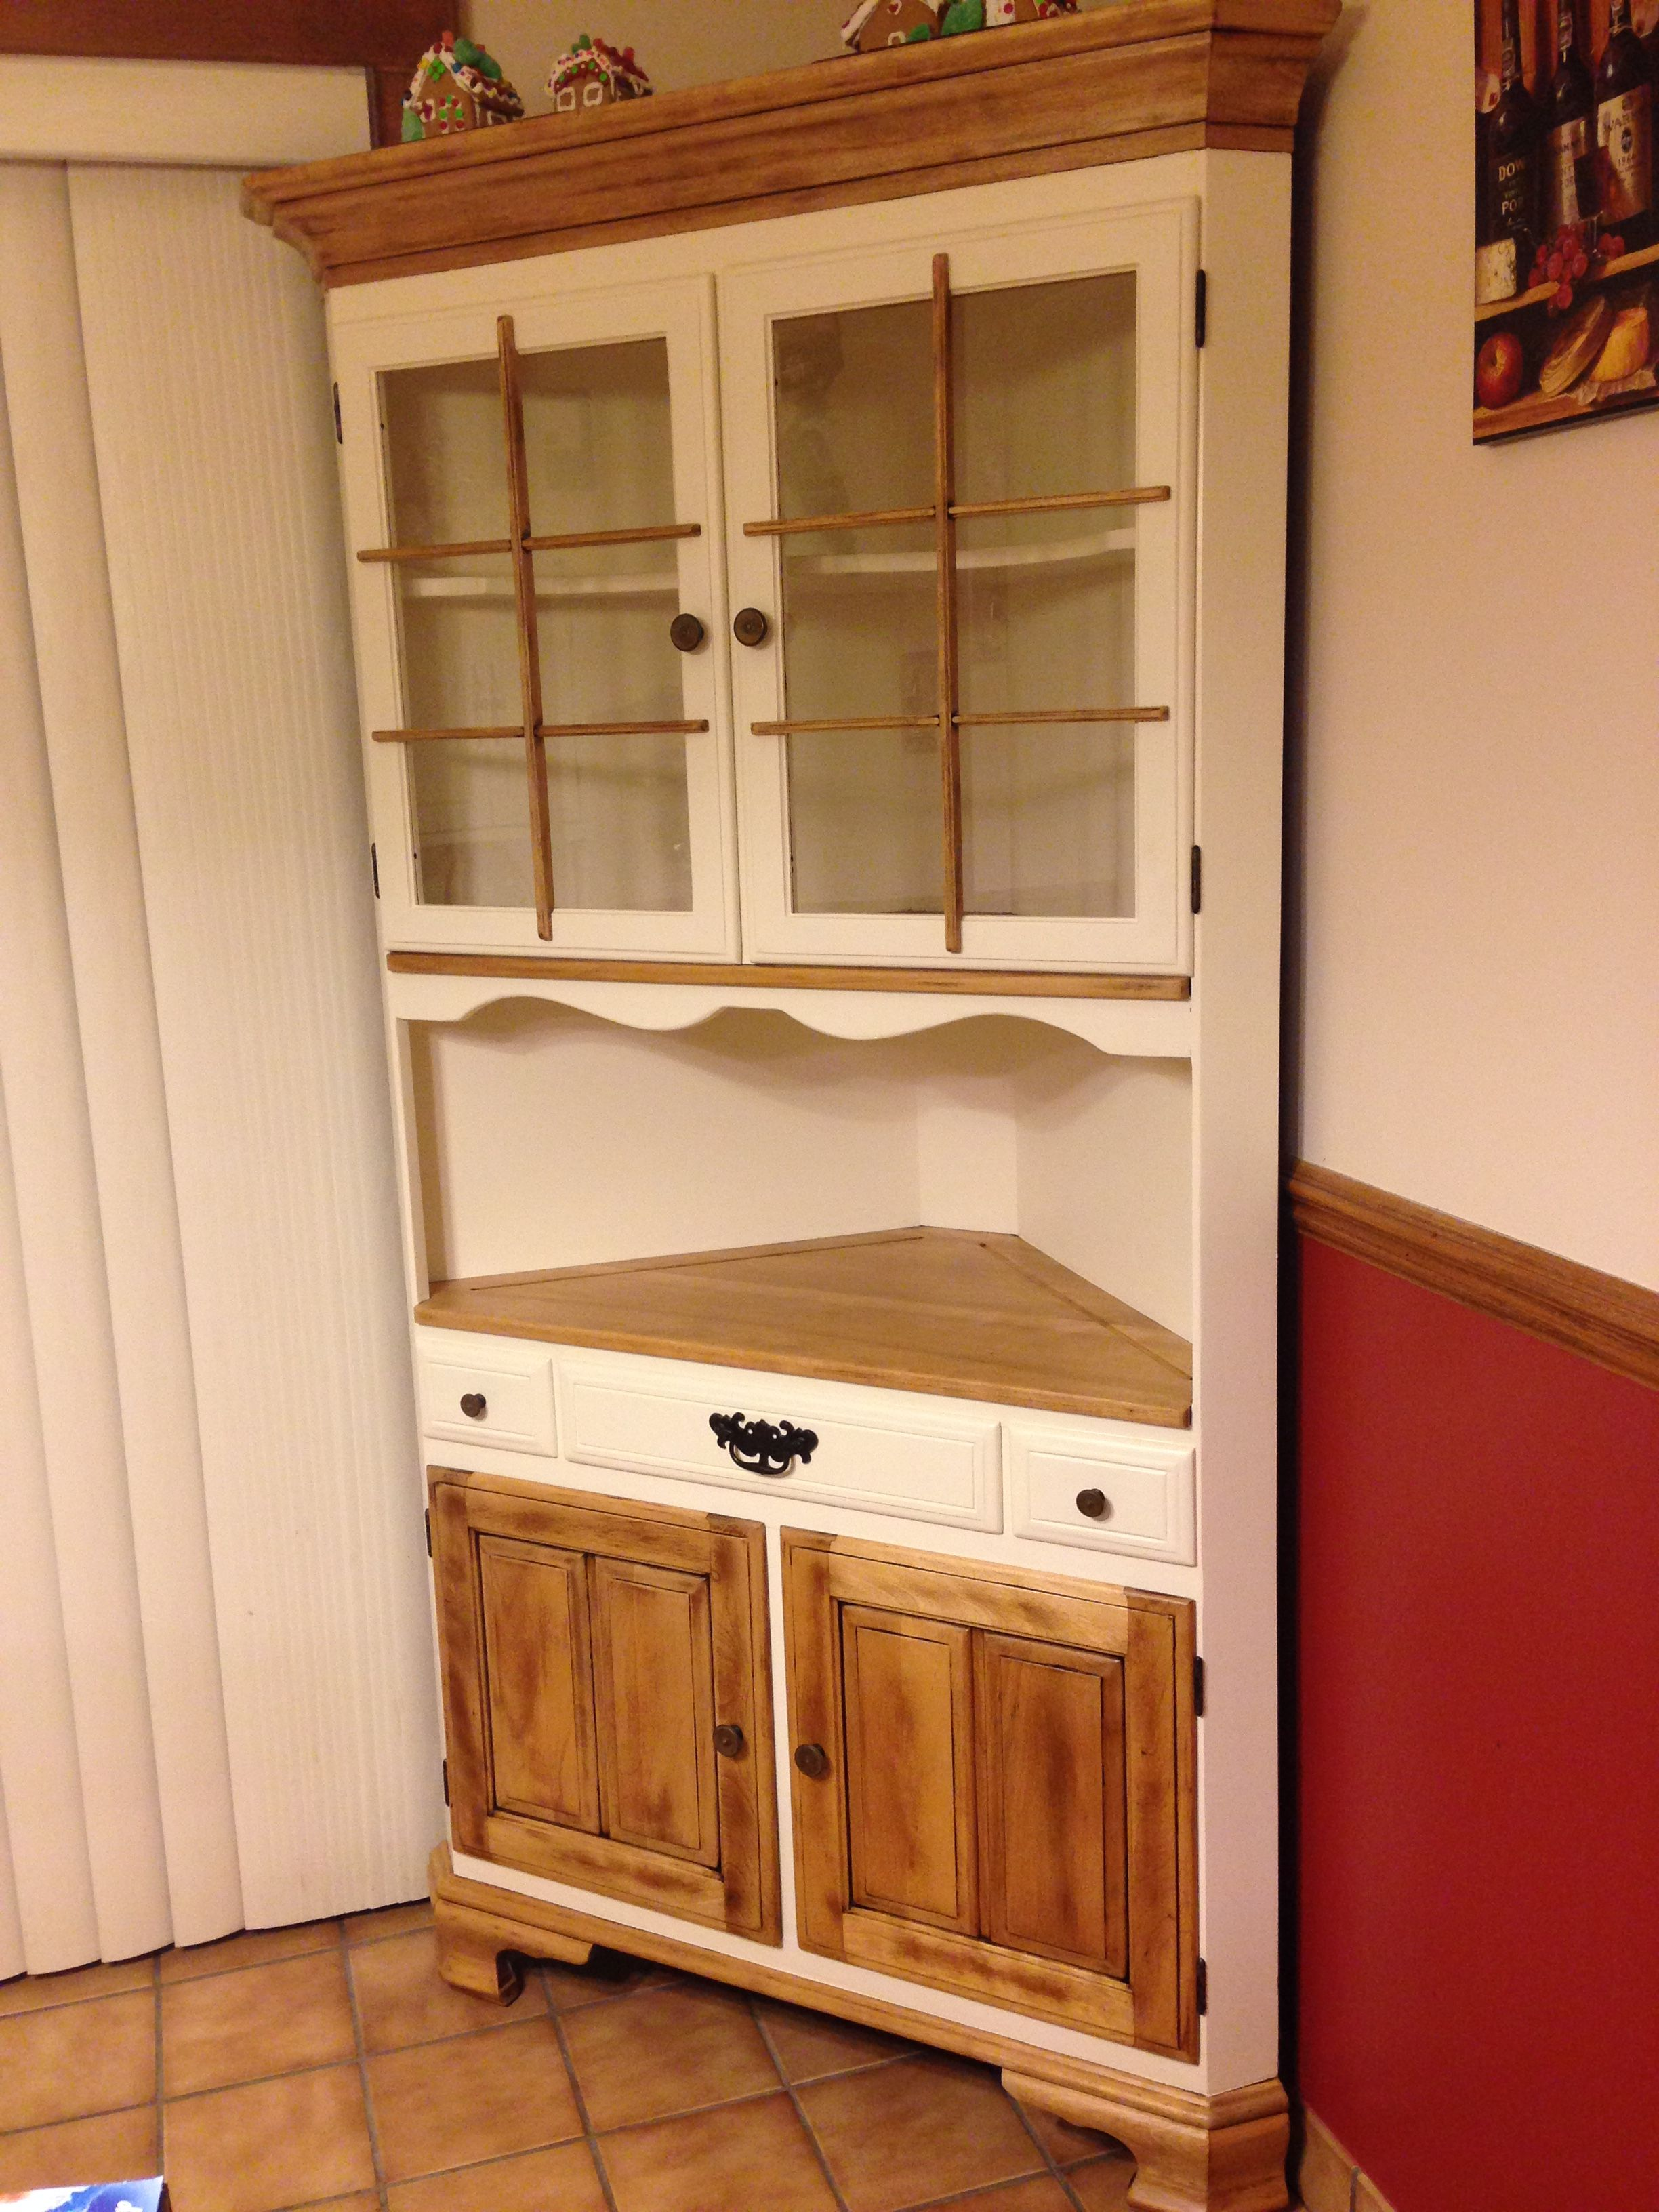 Refinished corner cabinet in cream and natural wood